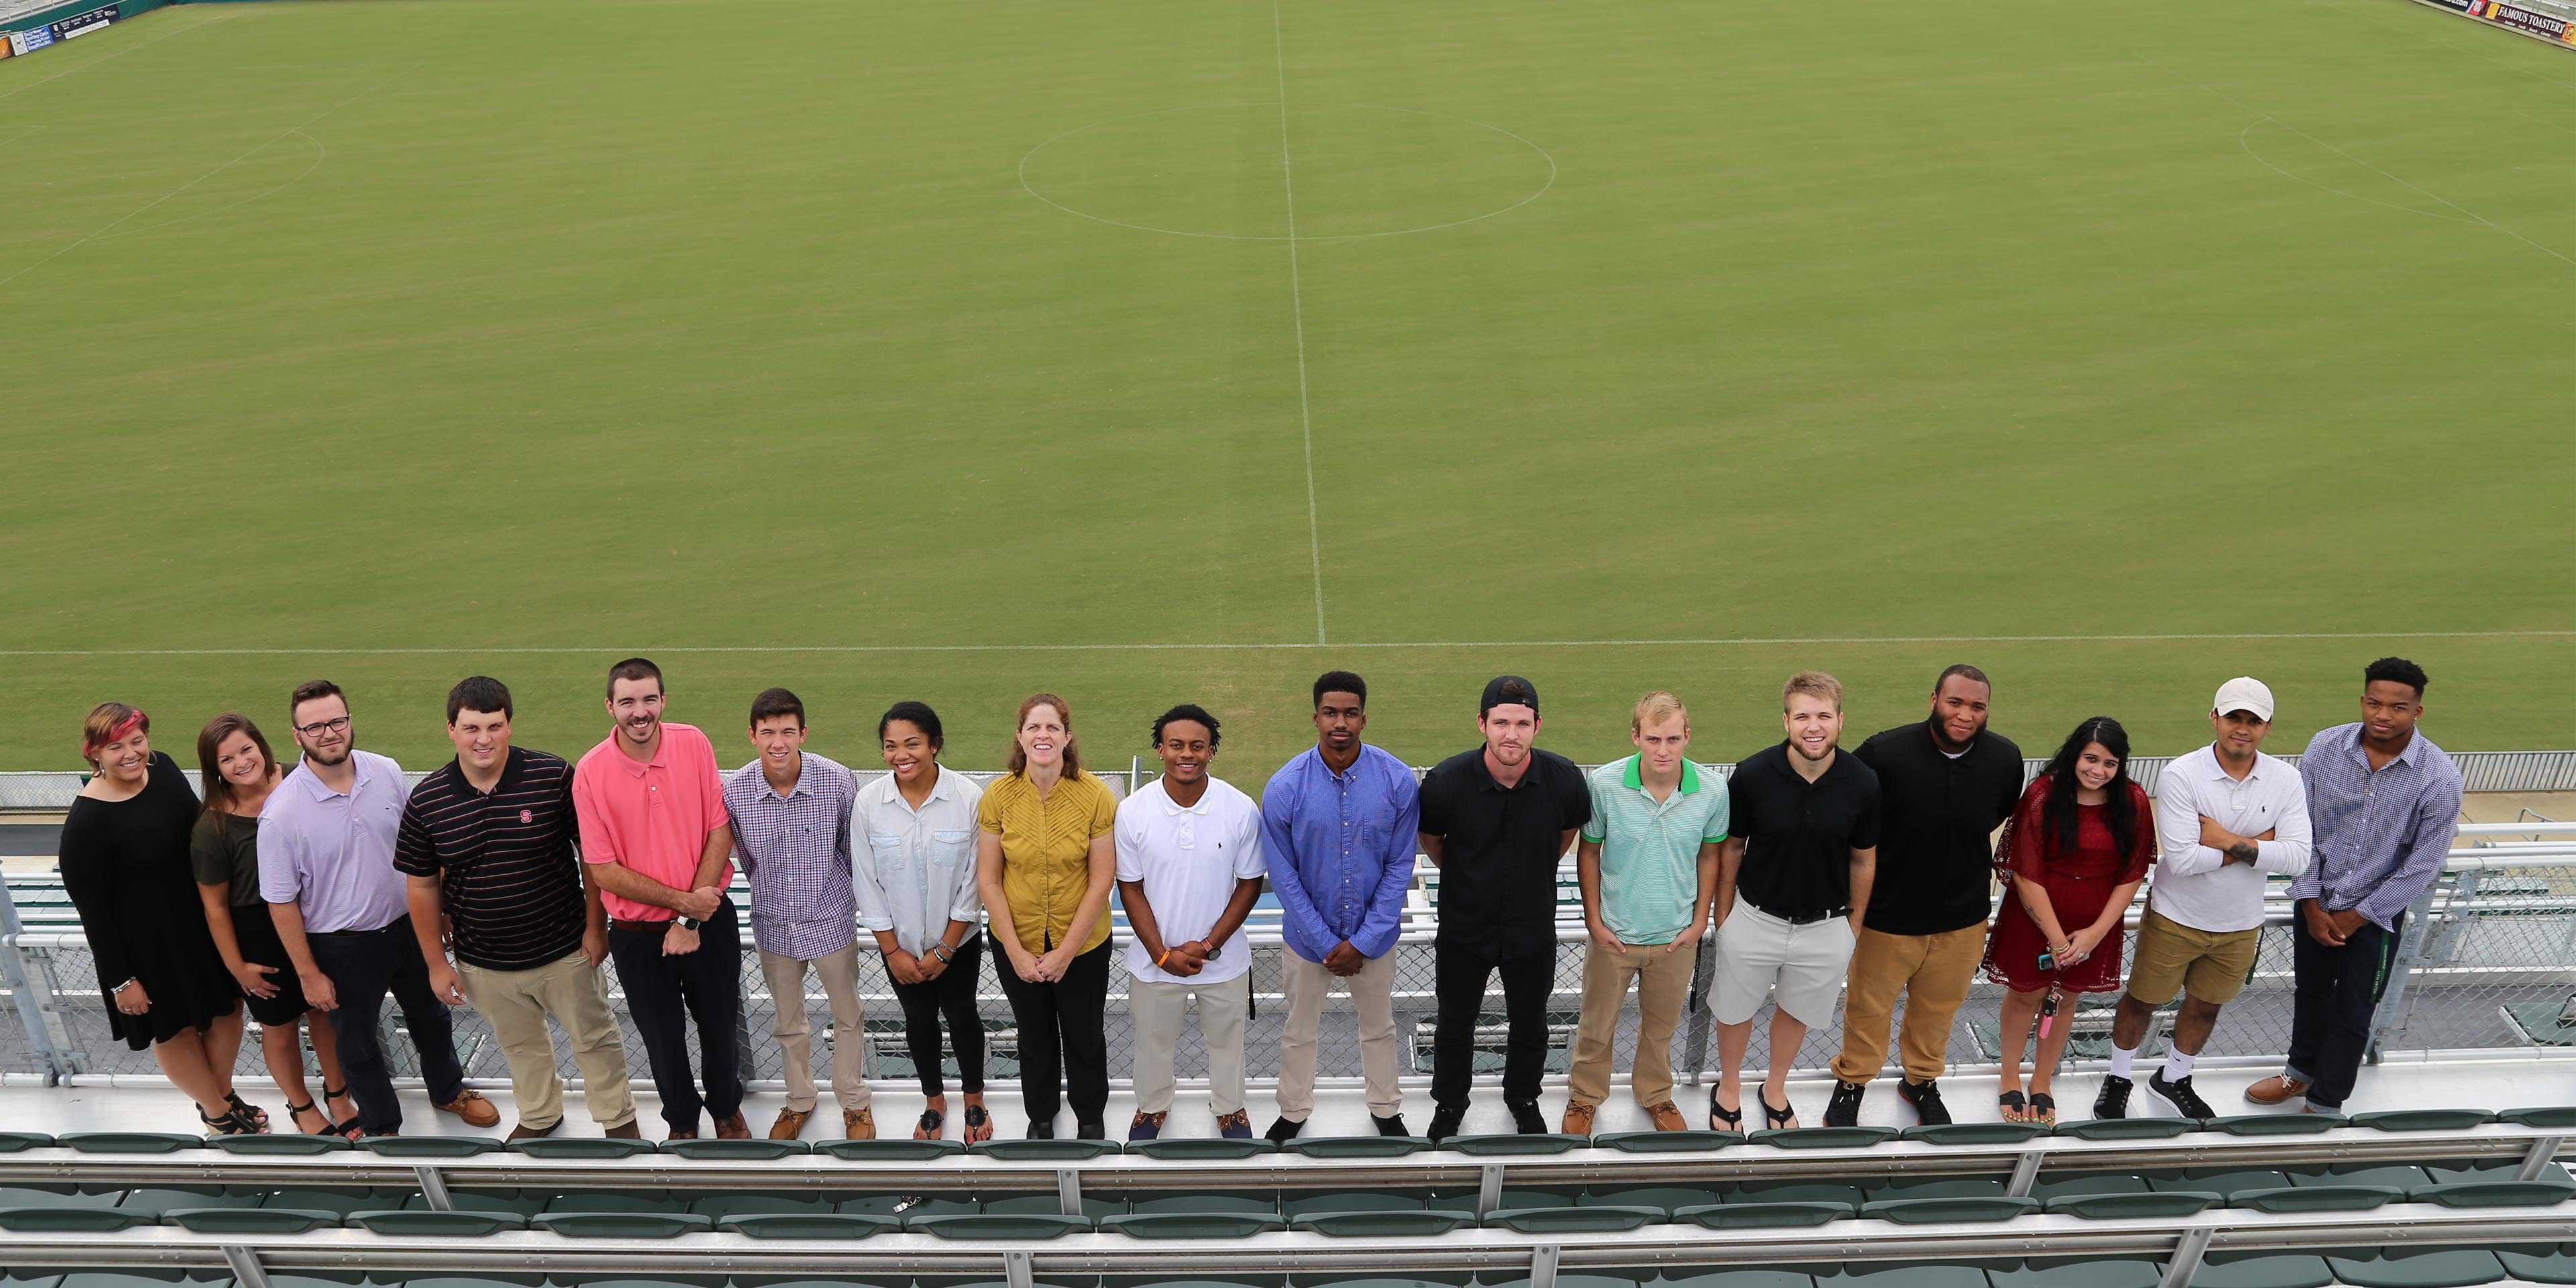 WPU Students at the NC Football Club stadium.